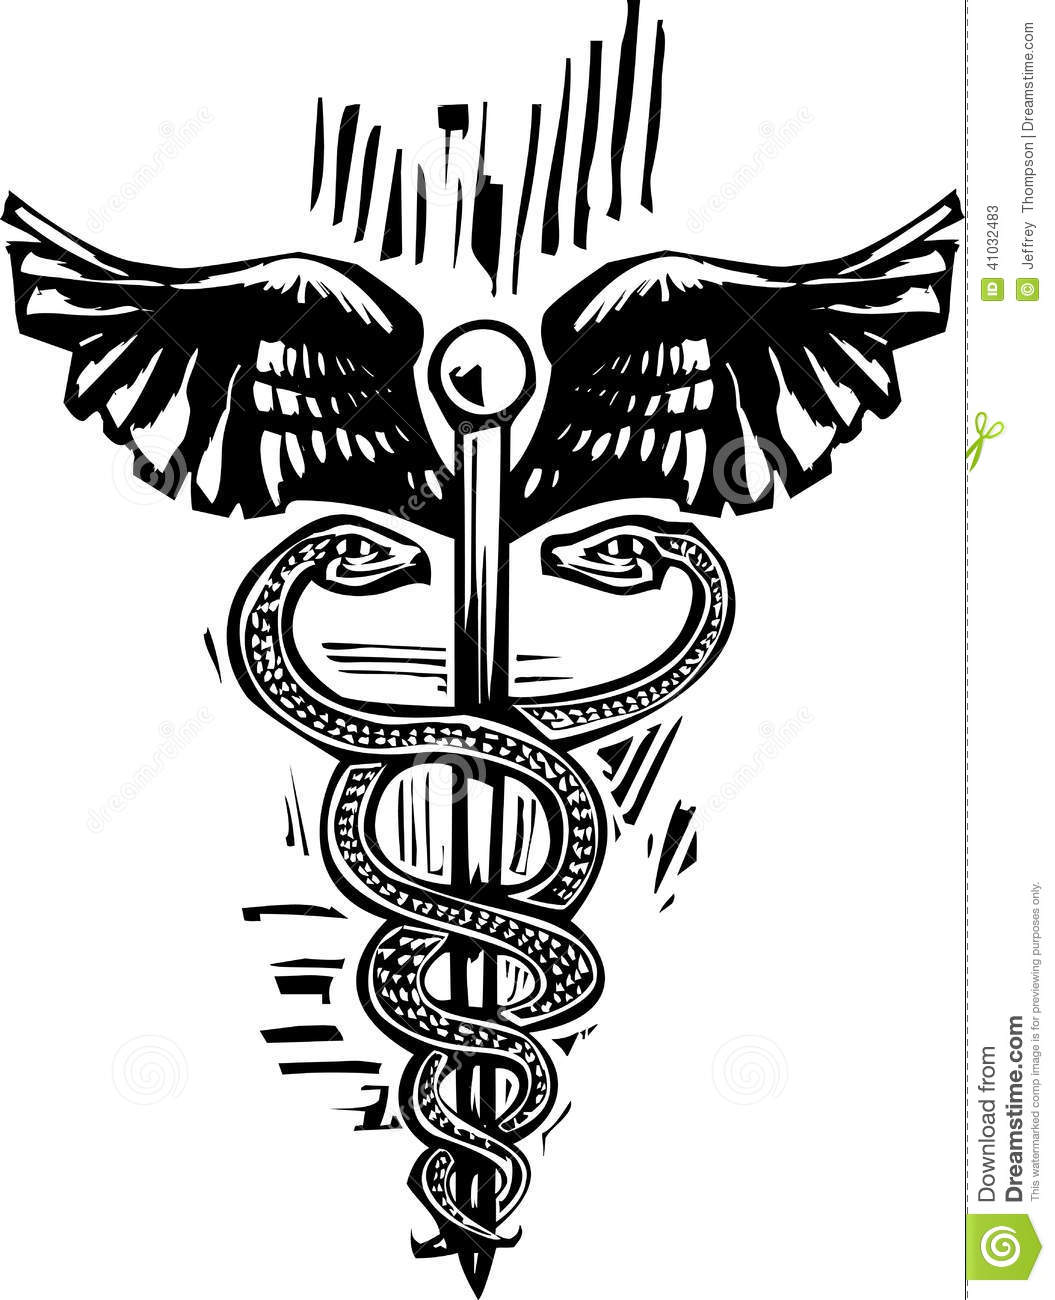 Caduceus Stock Vector - Image: 41032483